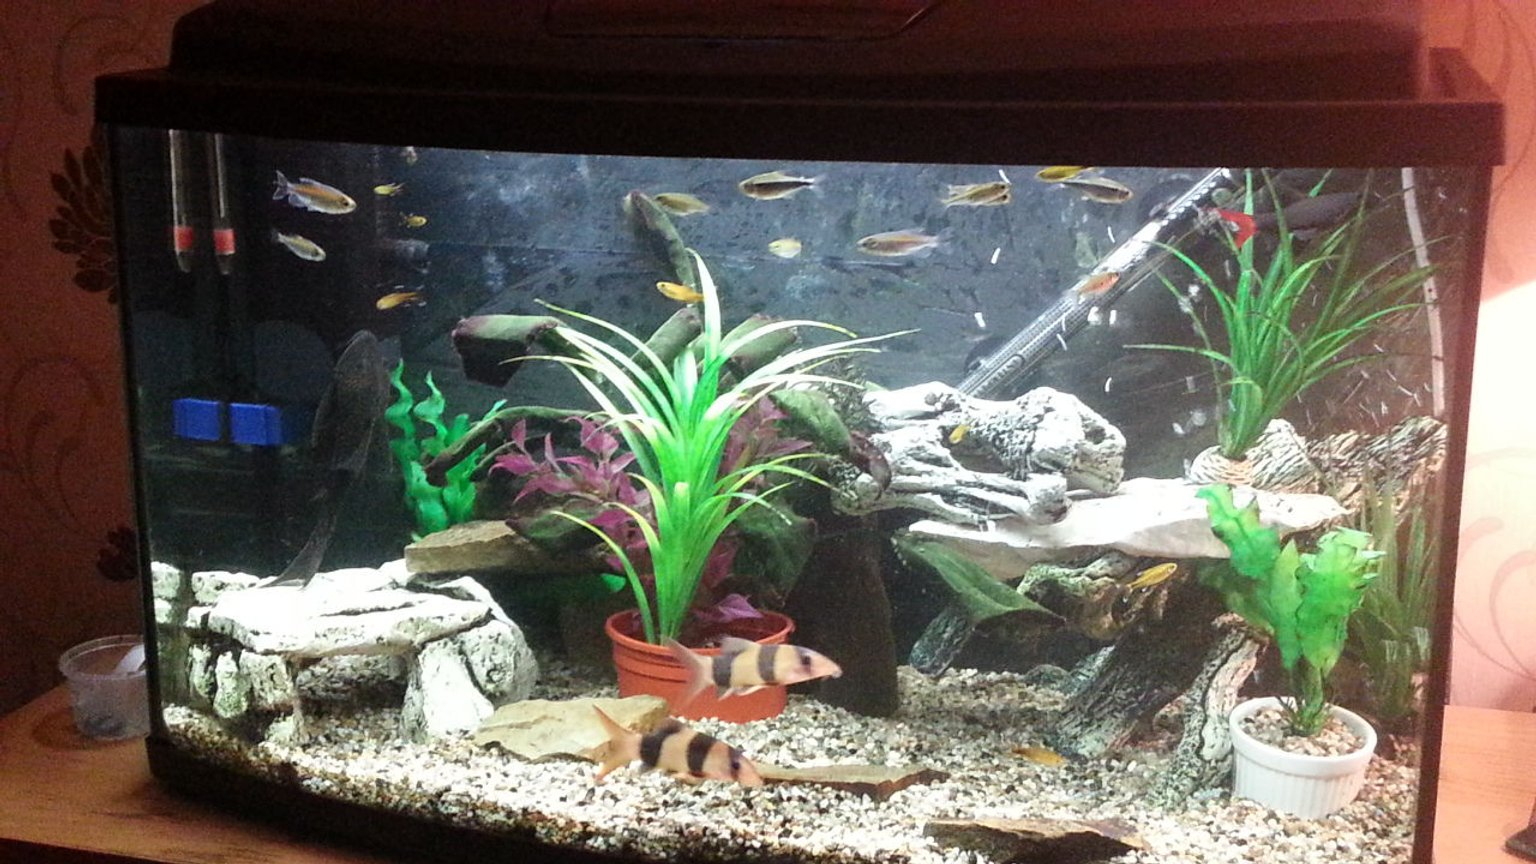 23 gallons freshwater fish tank (mostly fish and non-living decorations) - Trying to create a happy place for the loaches and shark while creating a bit of freedom for my tetras